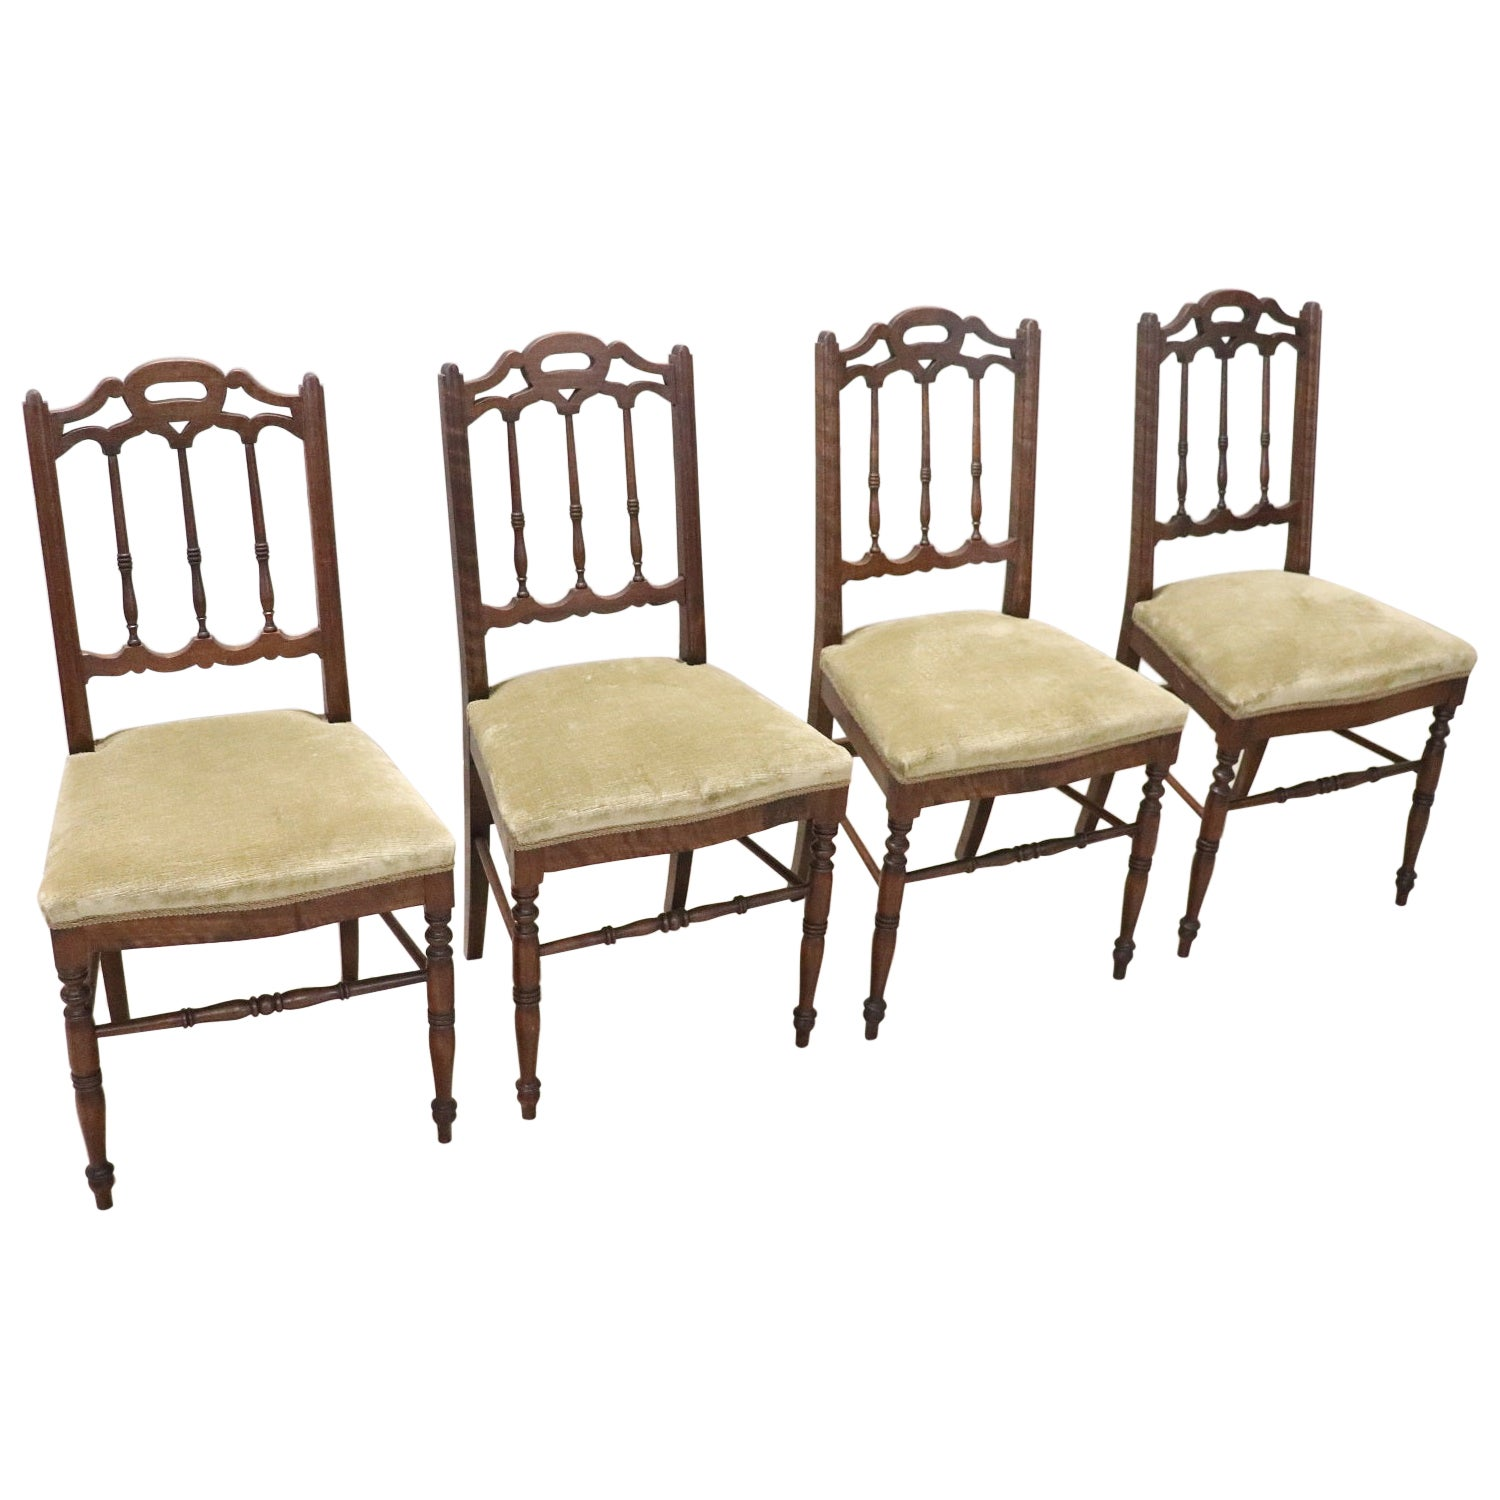 19th Century Italian Antique Turned Walnut Four Chairs